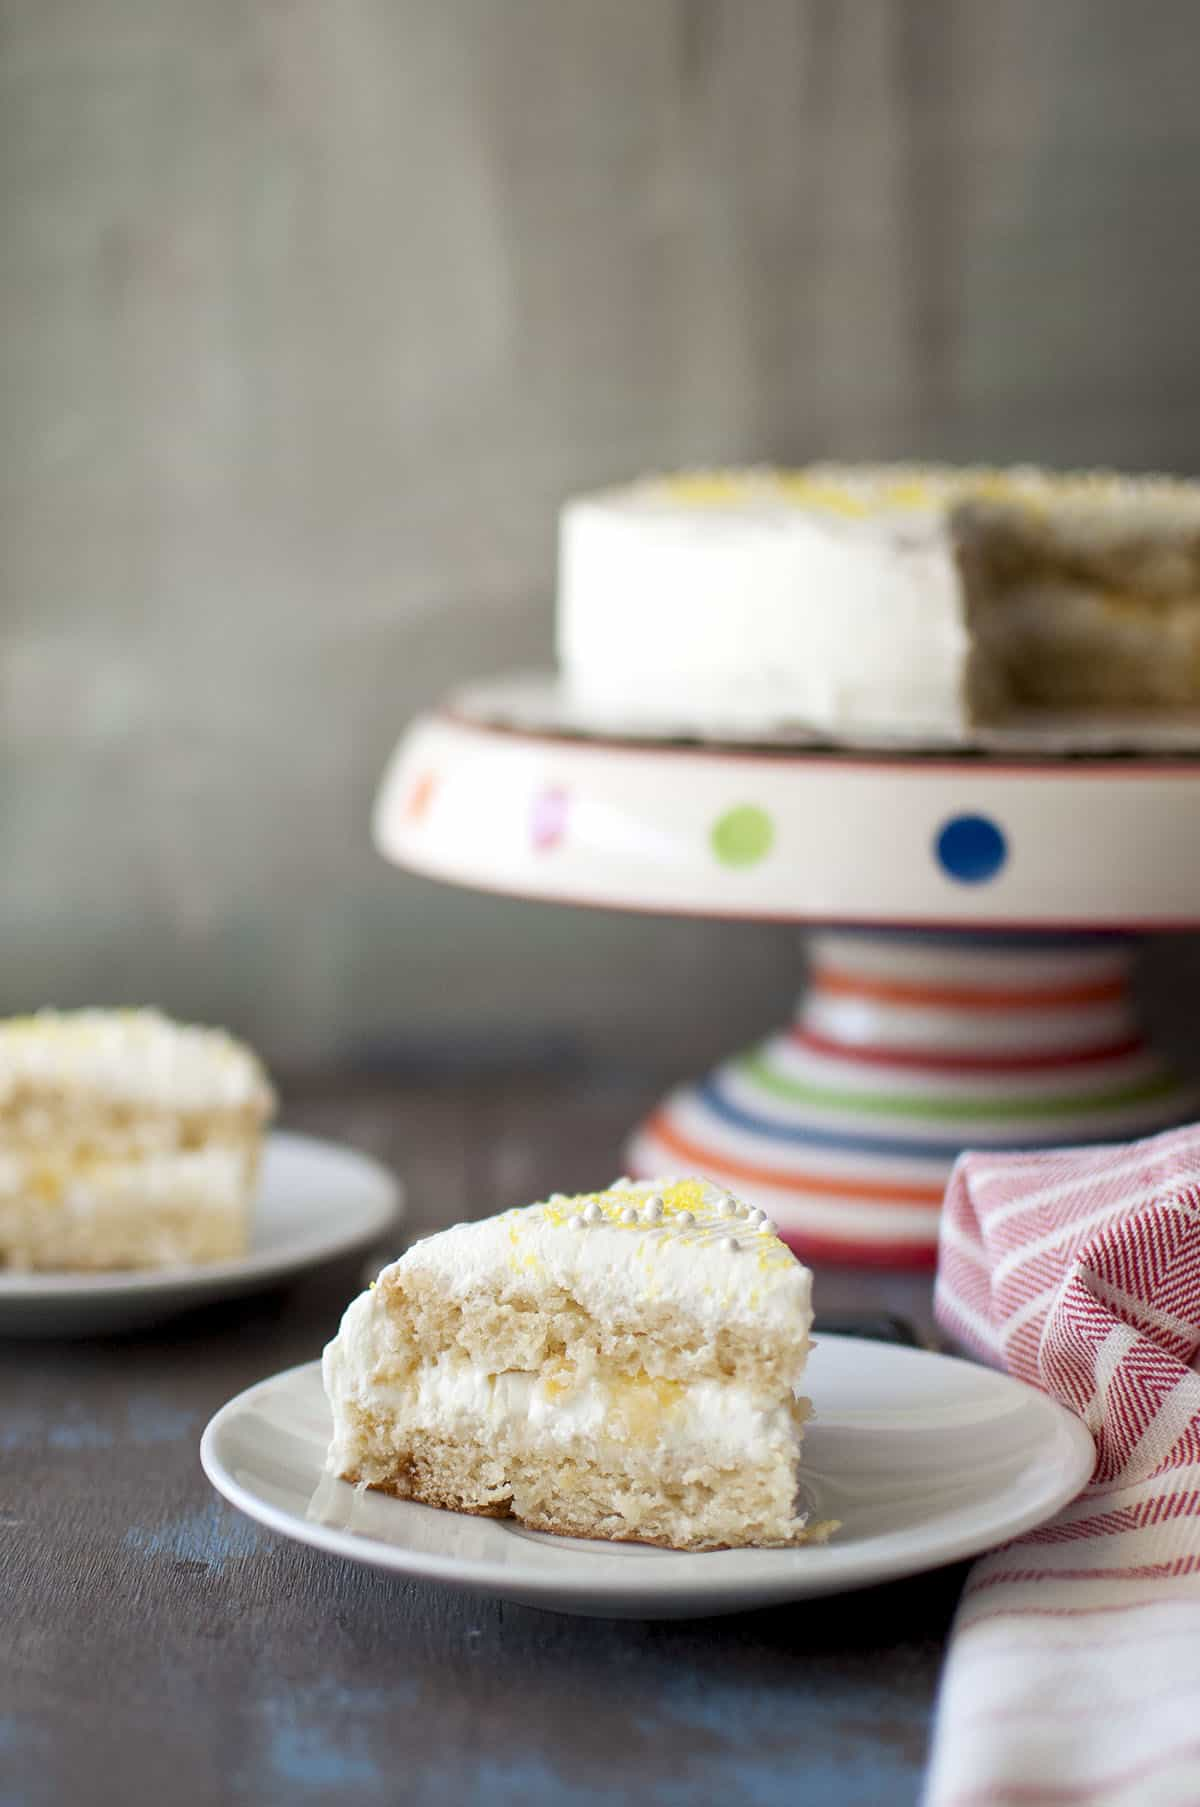 White plate with a slice of moist pineapple cake with a cake stand in the background